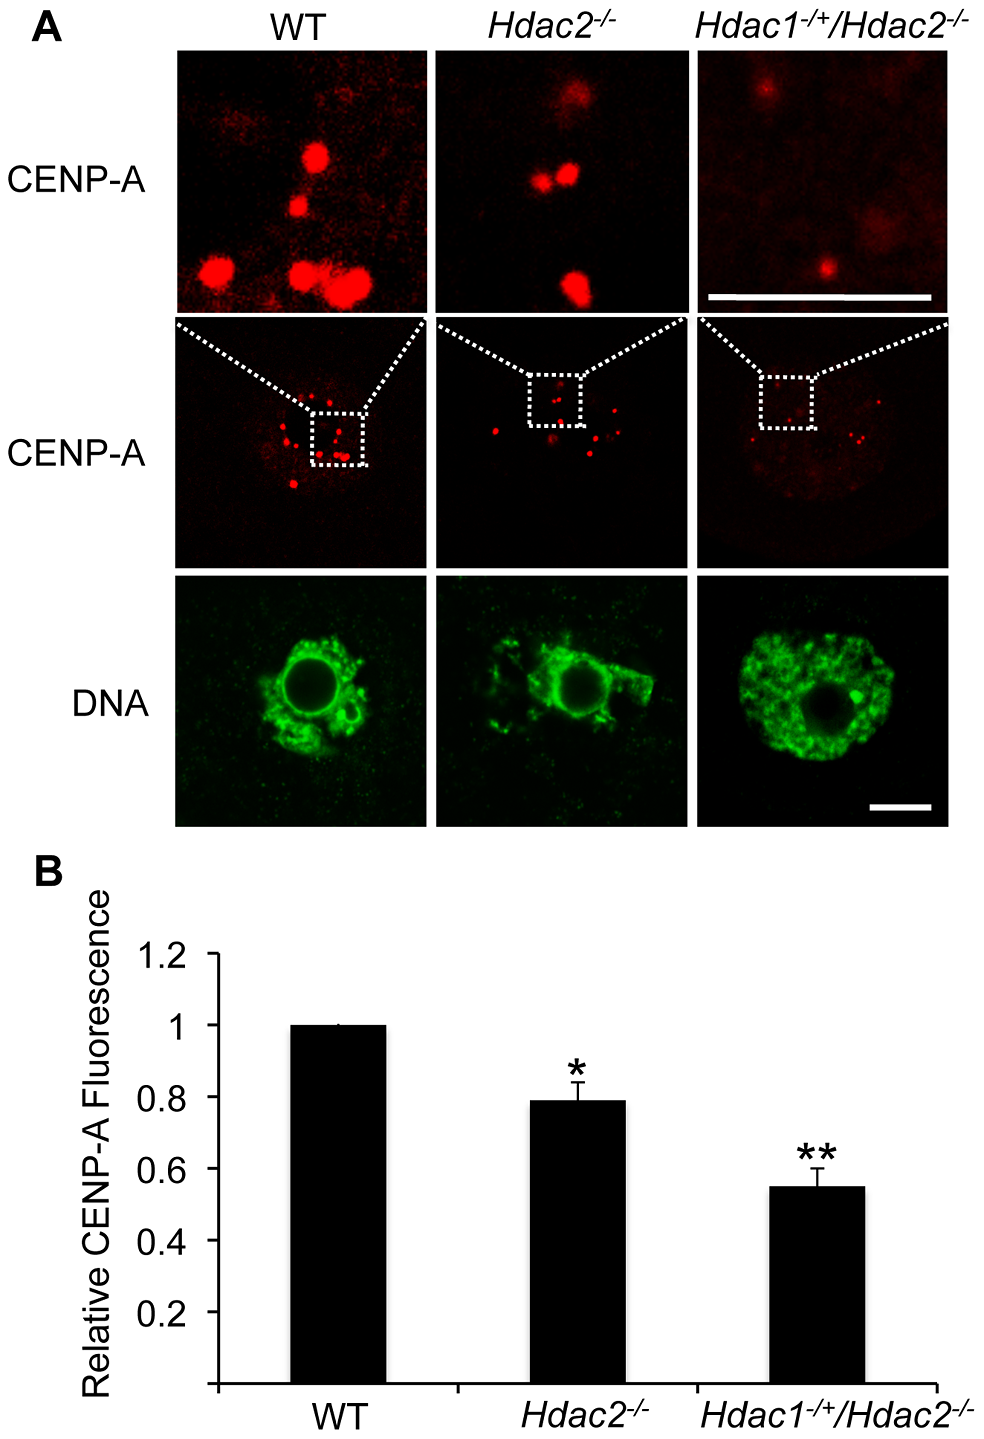 Deletion of maternal <i>Hdac2</i> leads to reduced CENP-A expression in mouse oocytes.